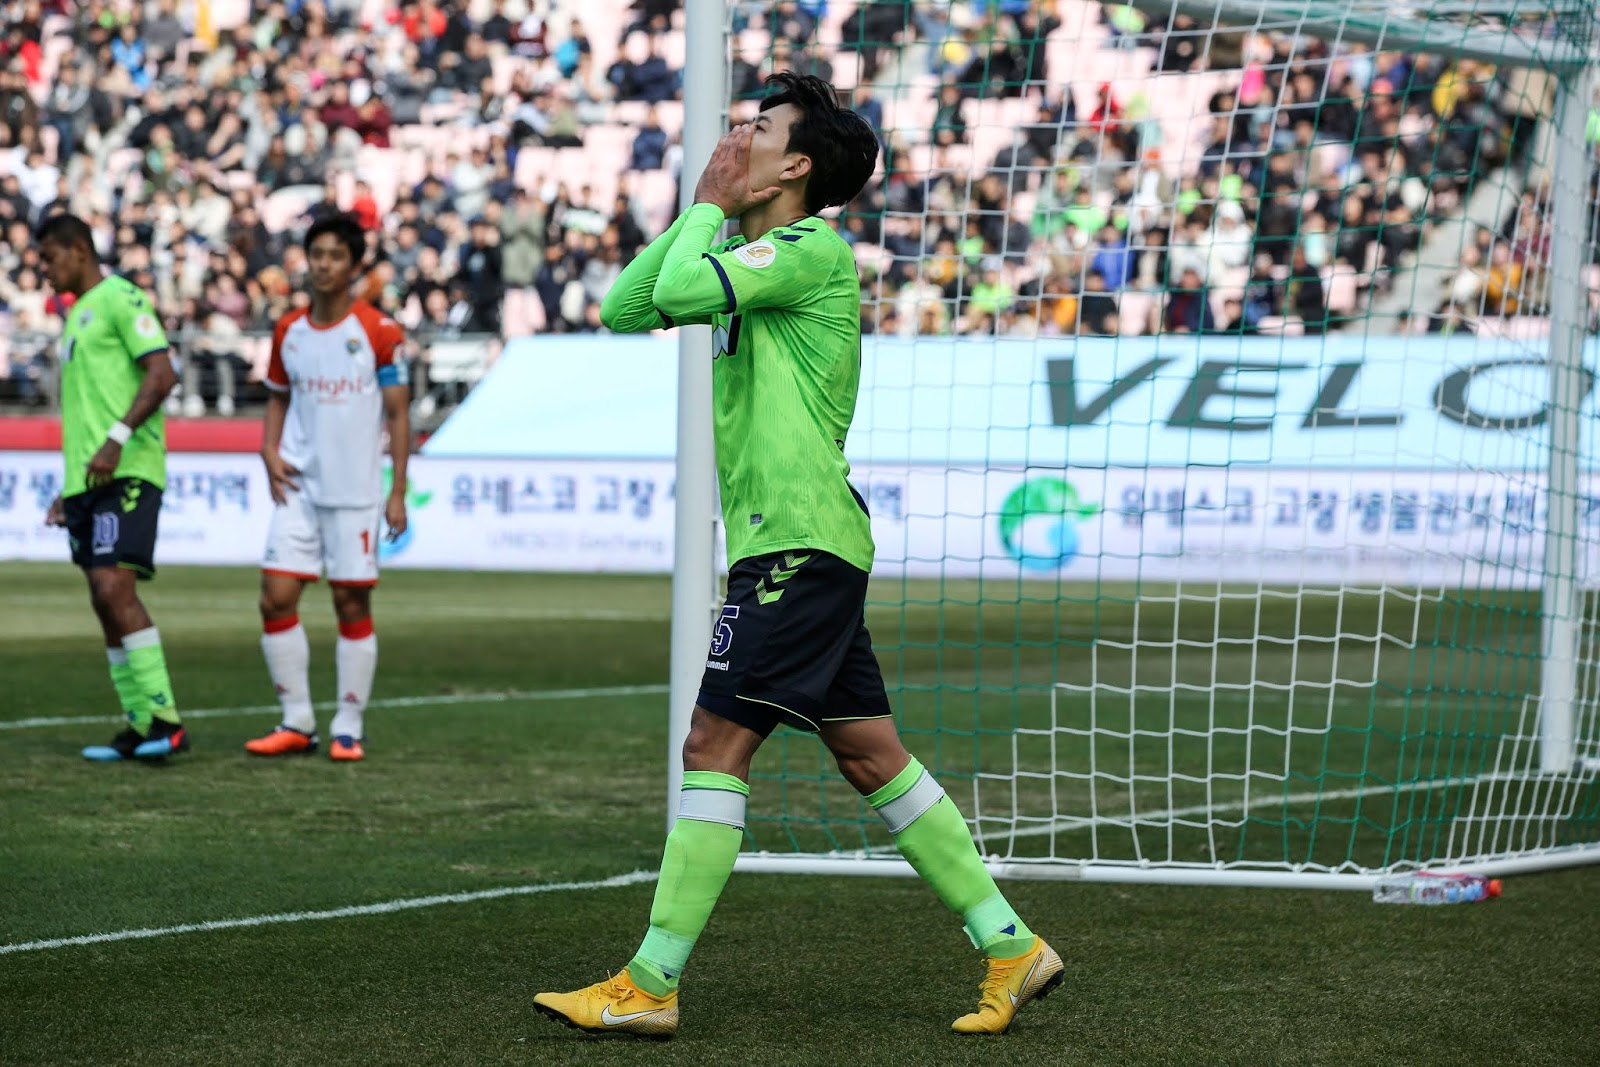 K League 1 Preview: Jeonbuk Hyundai Motors vs Pohang Steelers